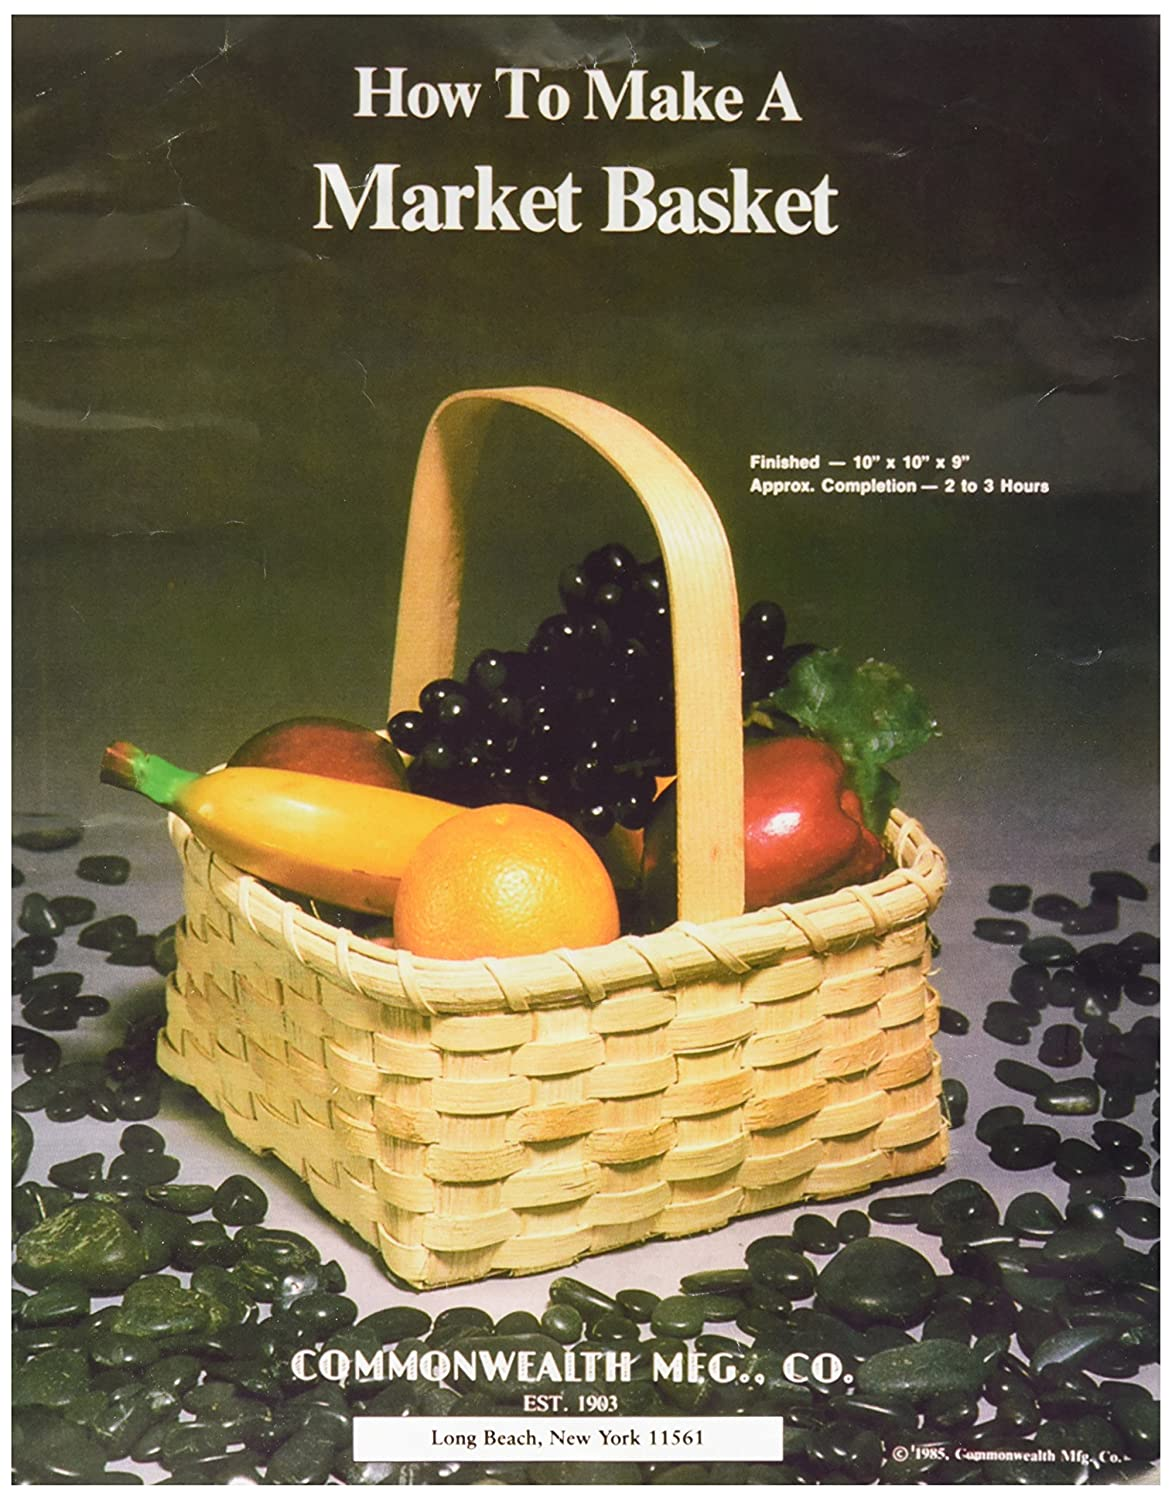 Commonwealth Basket Blue Ridge Basket Kits, Market Basket 10 inch by 10 inch by 9 inch with Handle 12646